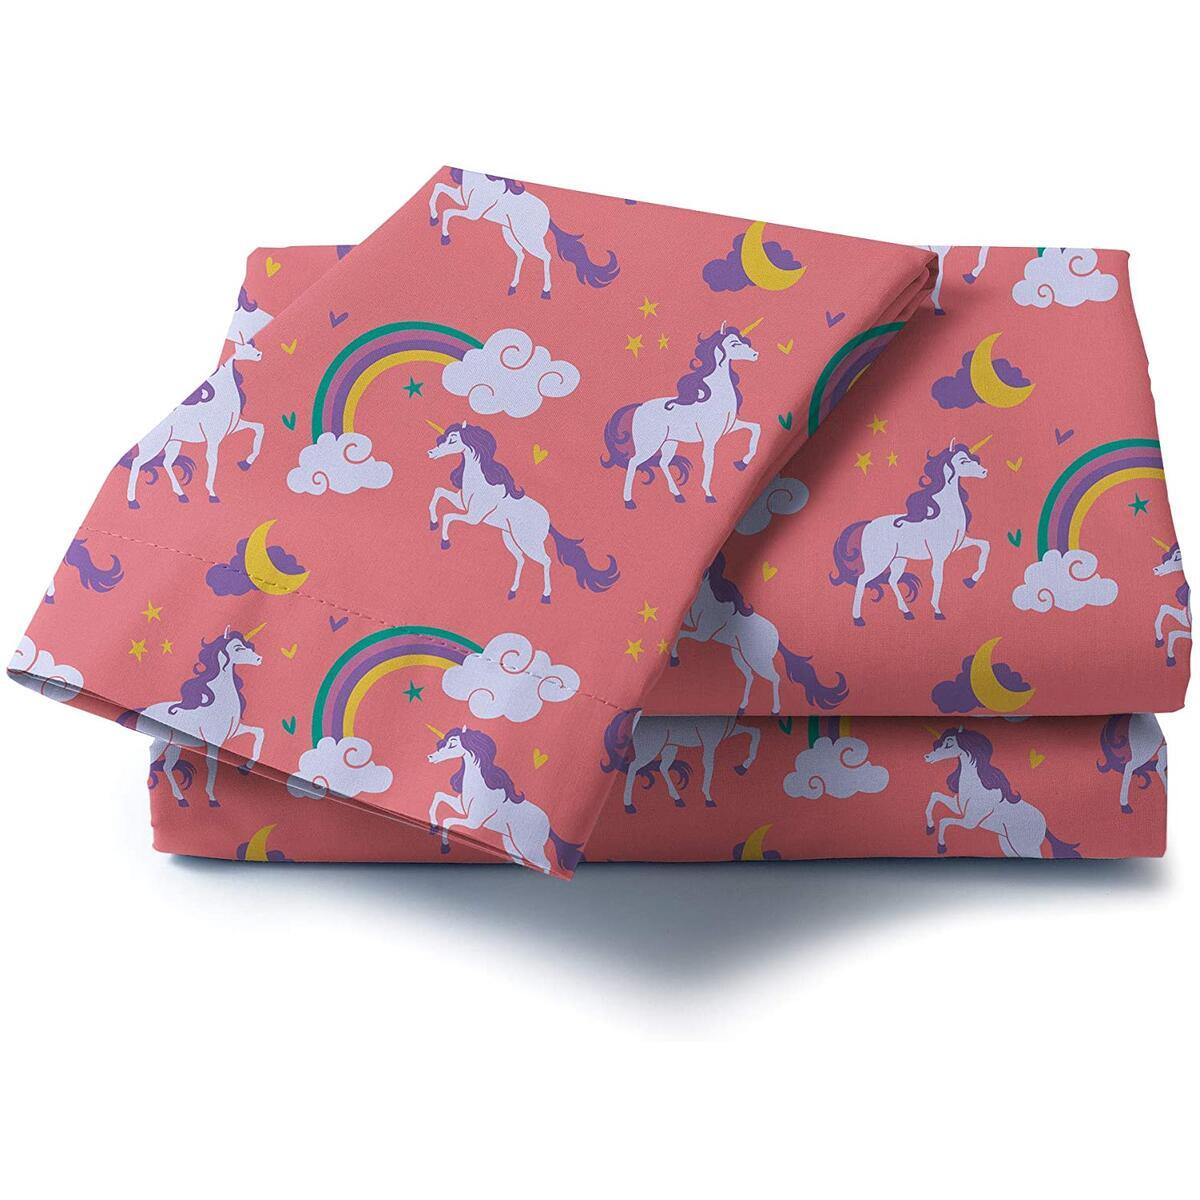 Castle and Clover Lunar Unicorn Sheets for Girls in Pink Twin